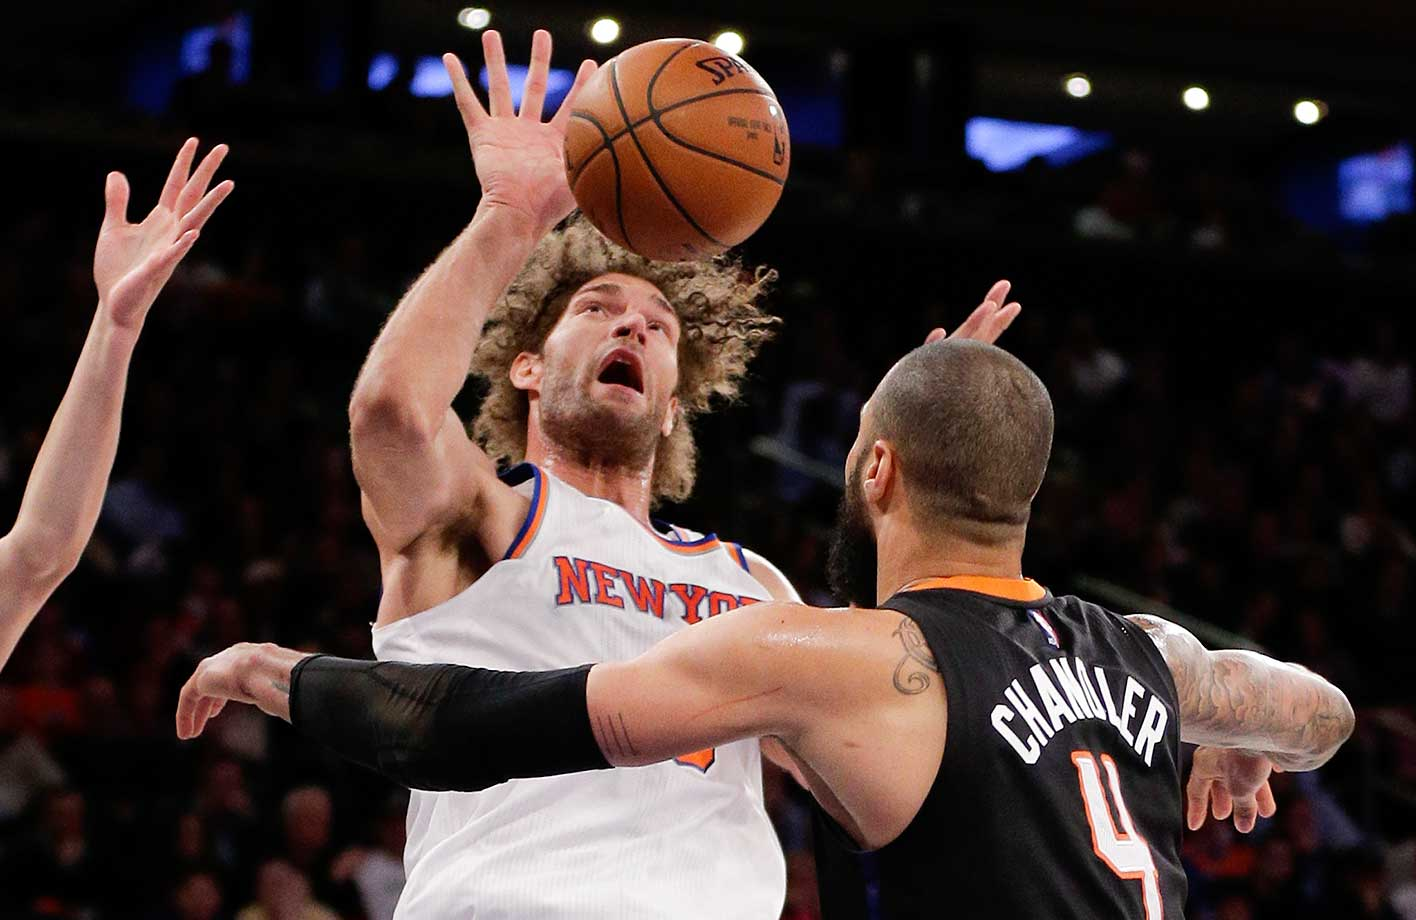 New York Knicks center Robin Lopez reaches for a rebound against Phoenix center Tyson Chandler in New York. The Knicks won 102-84.